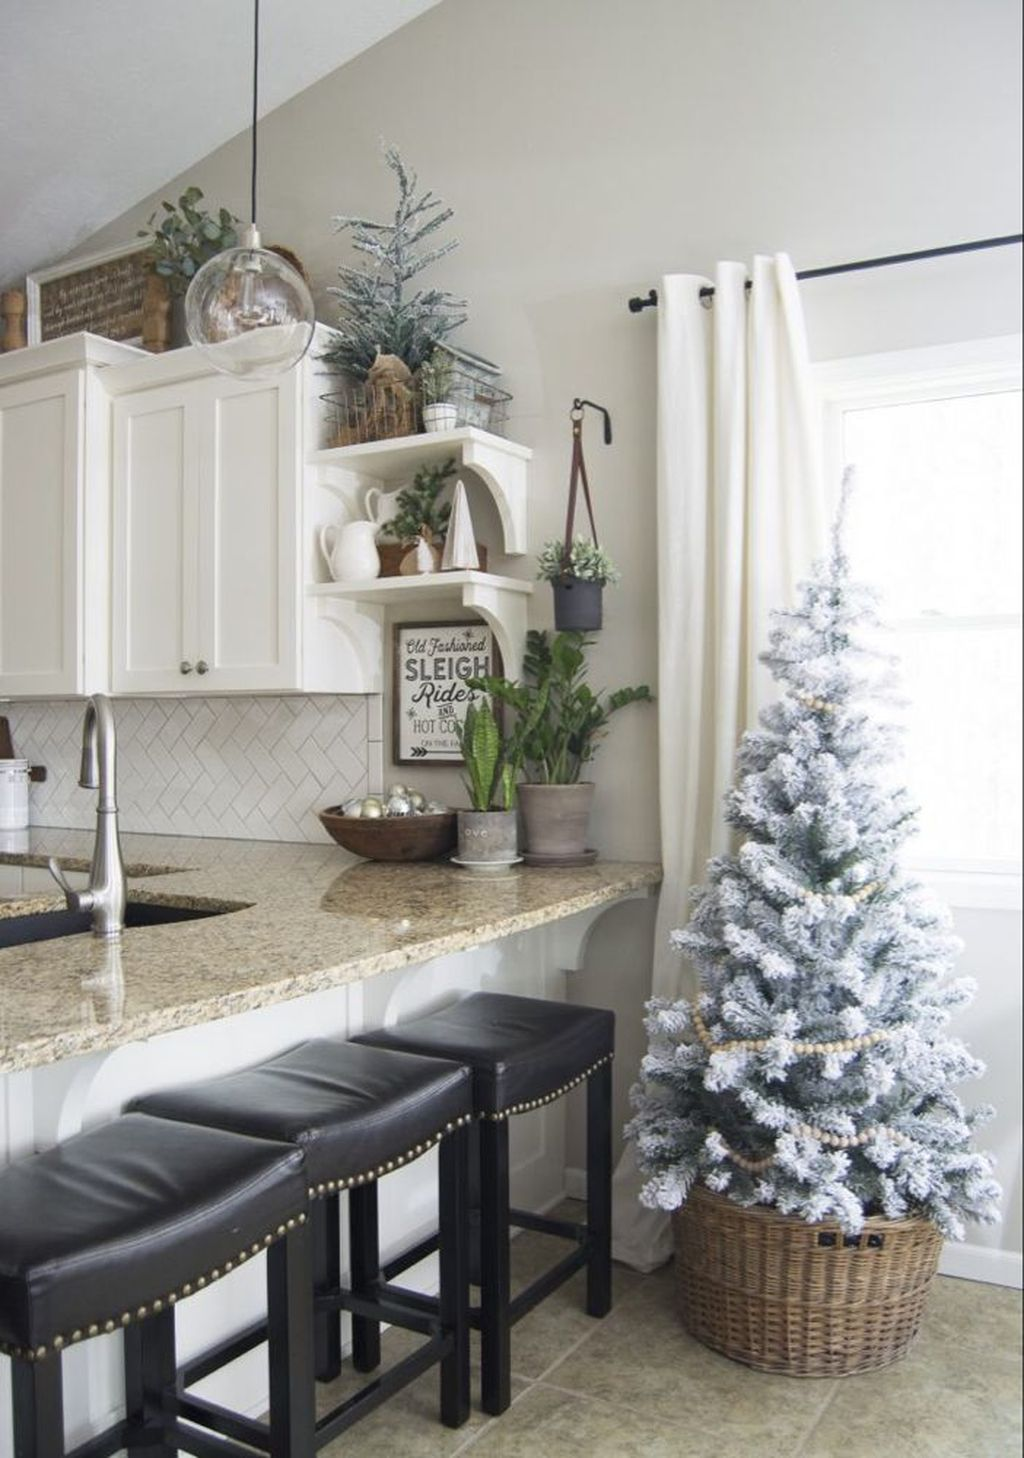 Inspiring Winter Kitchen Decor Ideas You Can Try 11